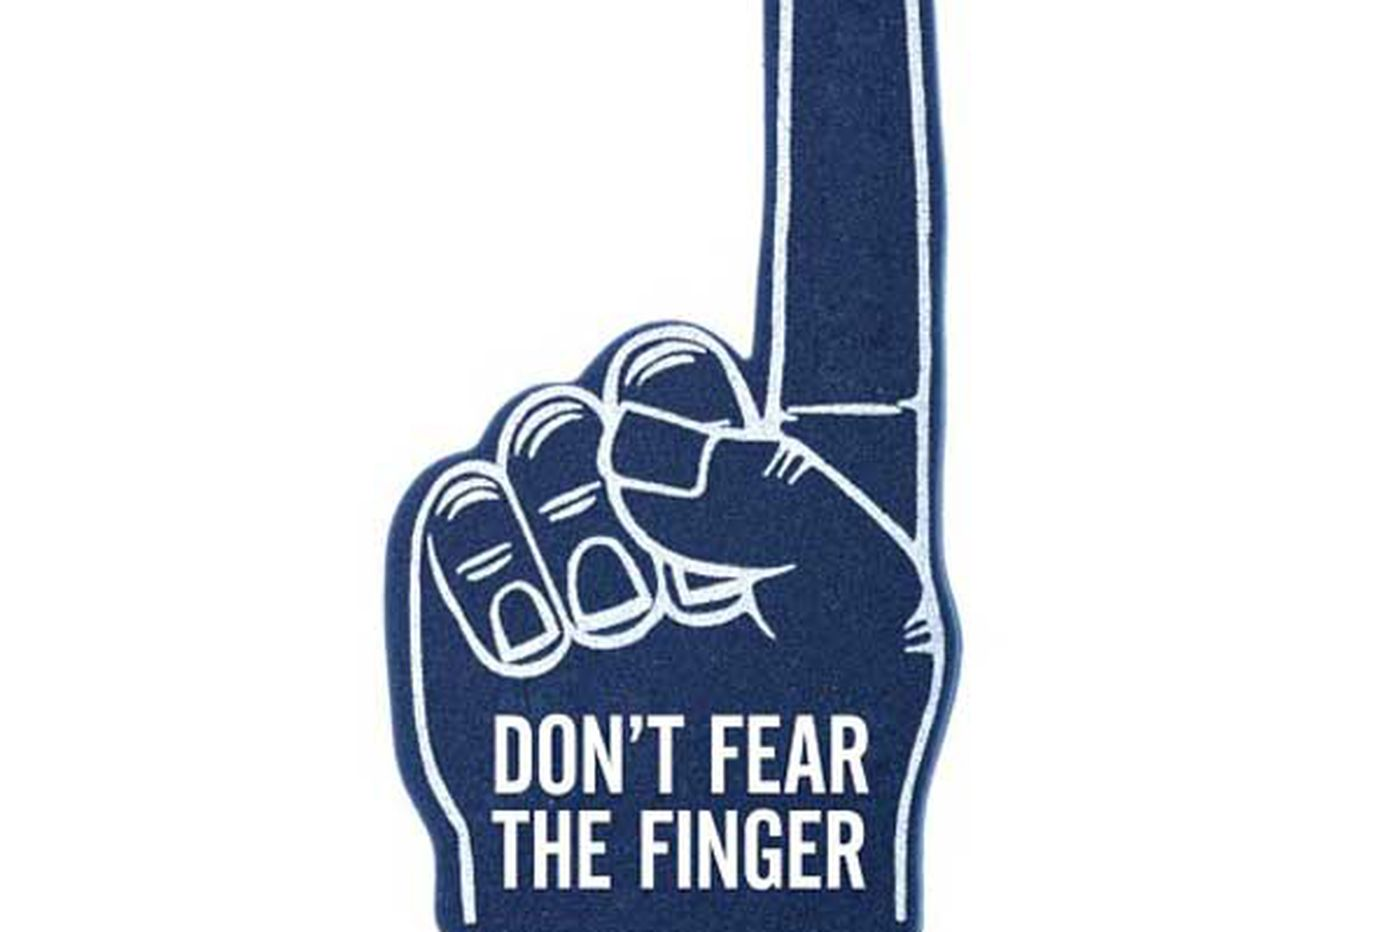 Prostate cancer activists launch 'the finger' campaign to stem decline in testing